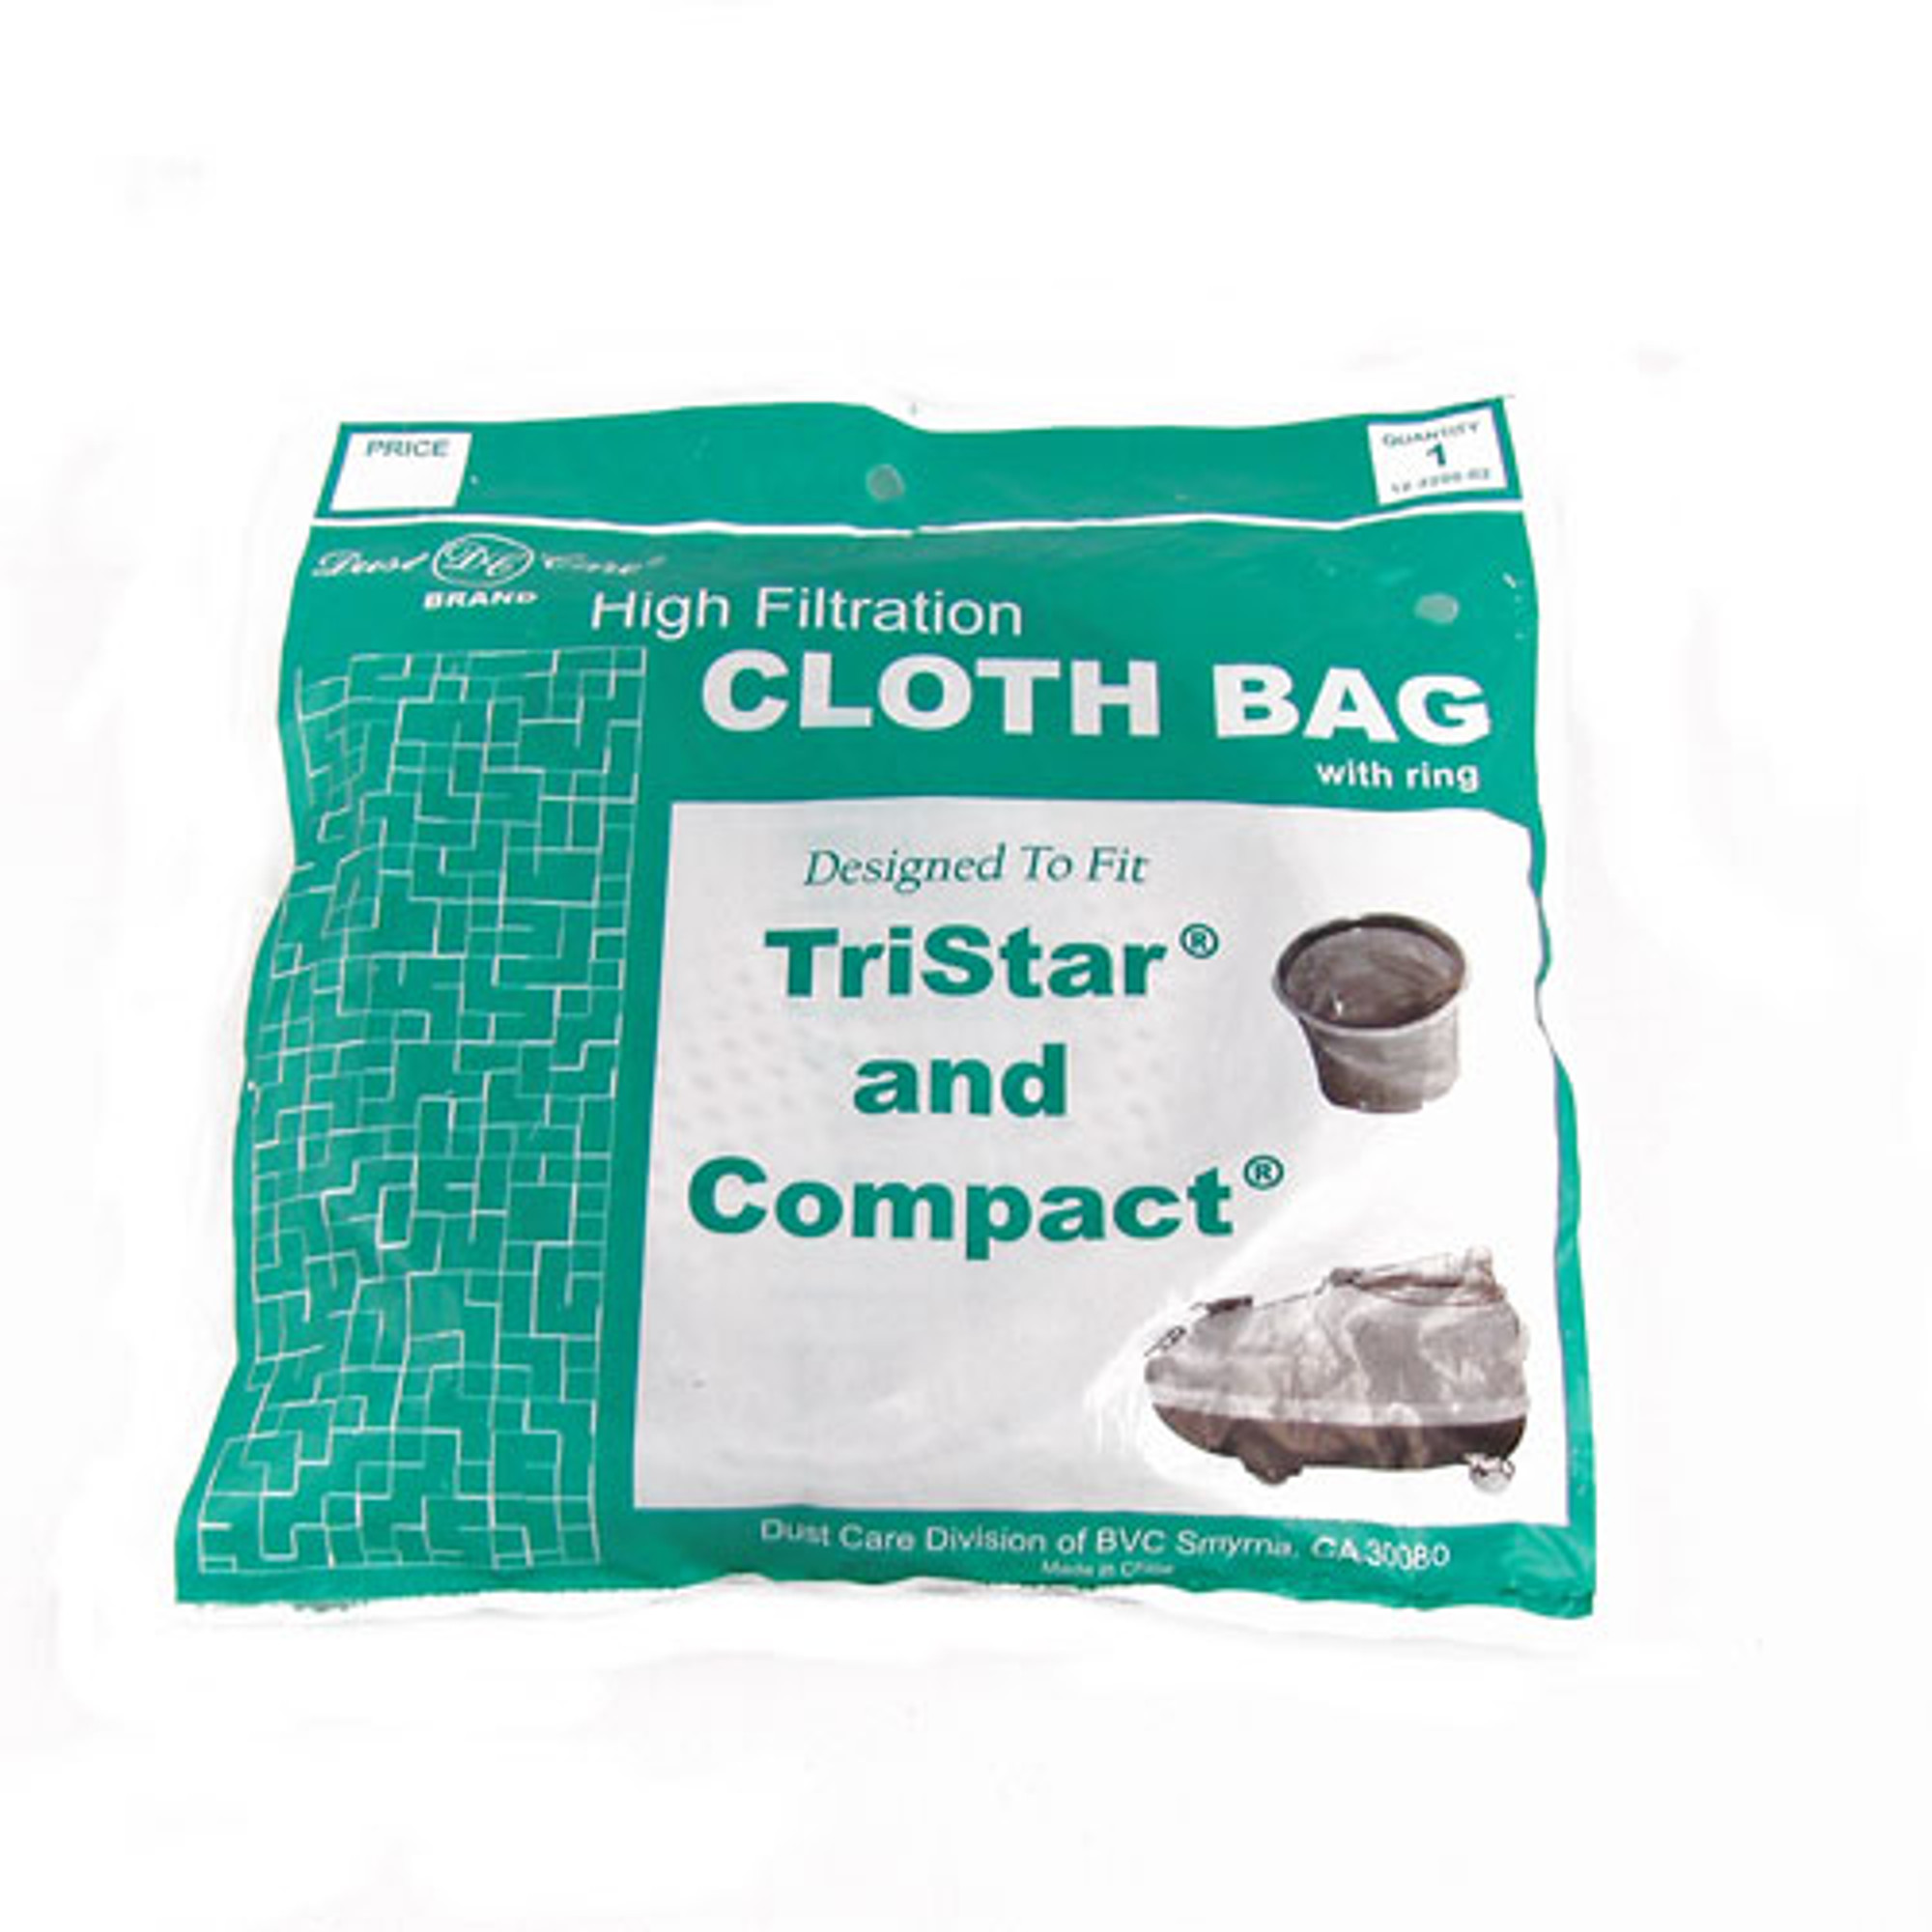 Buy Tristar Compact High Filtration Cloth Bag Filter With Ring 1pk From Canada At Mchardyvac Com